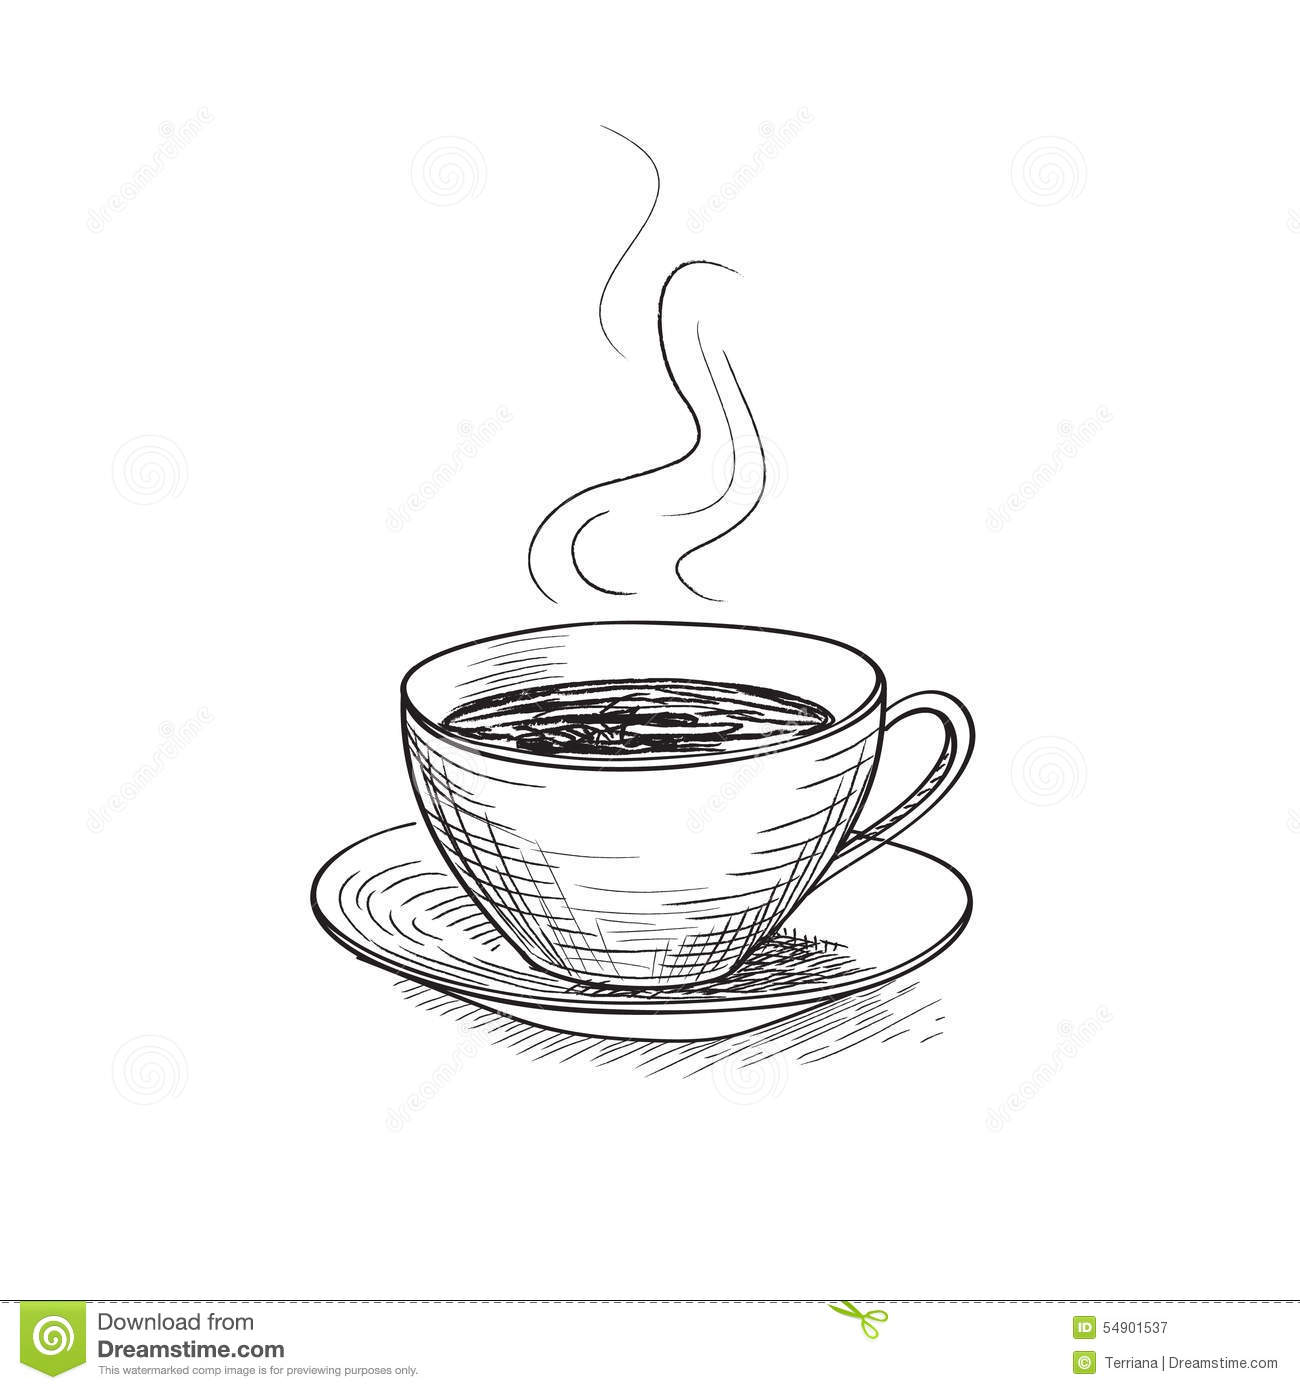 Coffee cup sketch - Coffee Cup